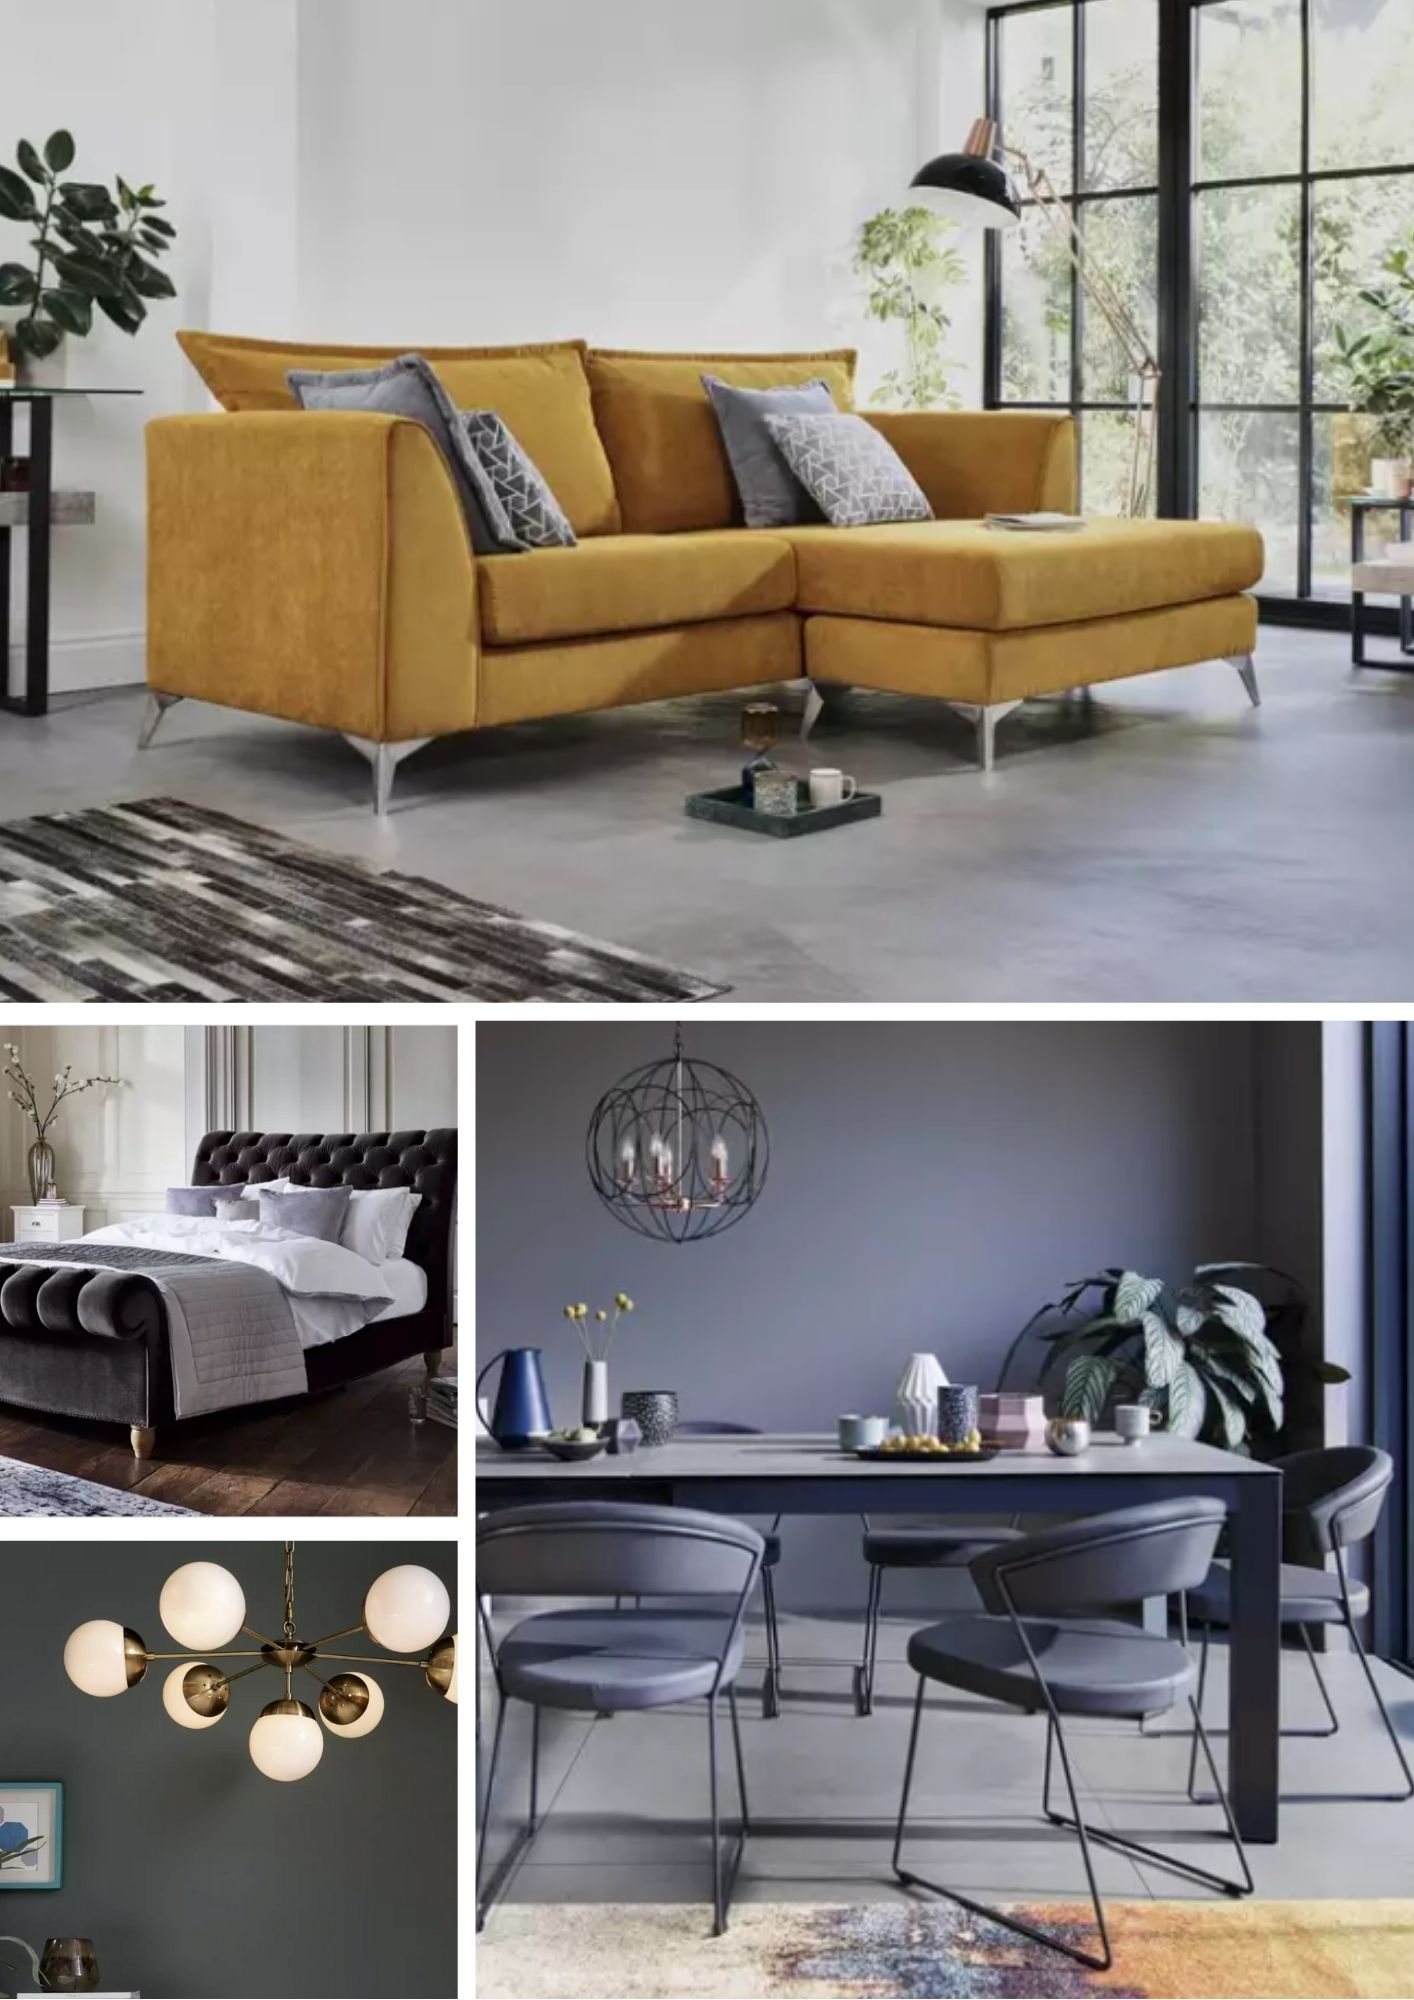 My Top 5 Picks From The Furniture Village Black Friday